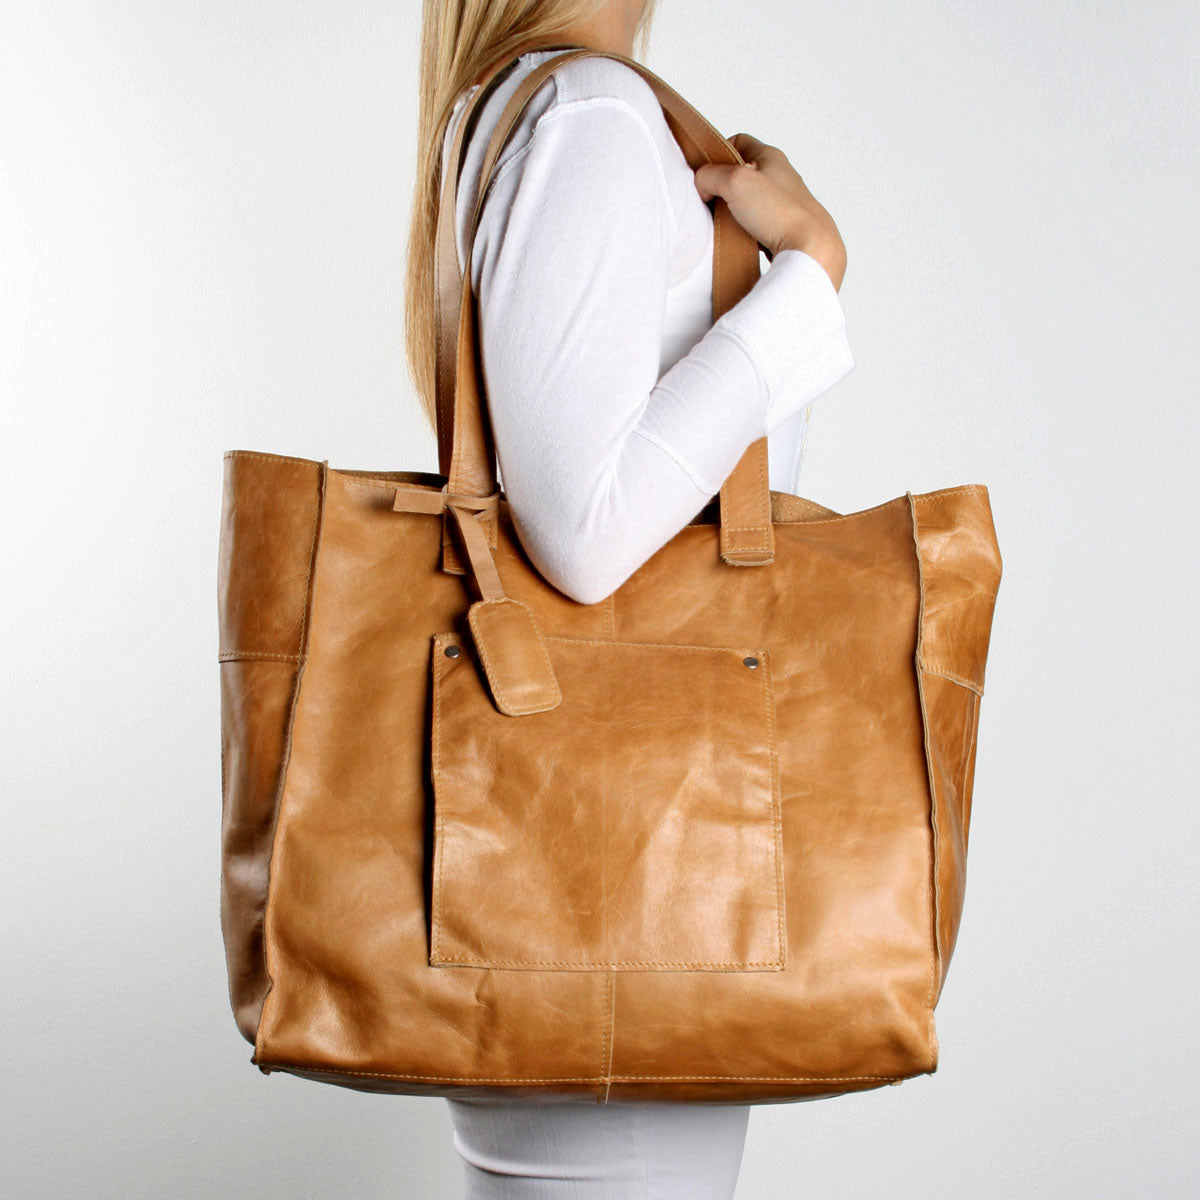 Thandana Raw Tote Bag - Brown - Zufrique Boutique